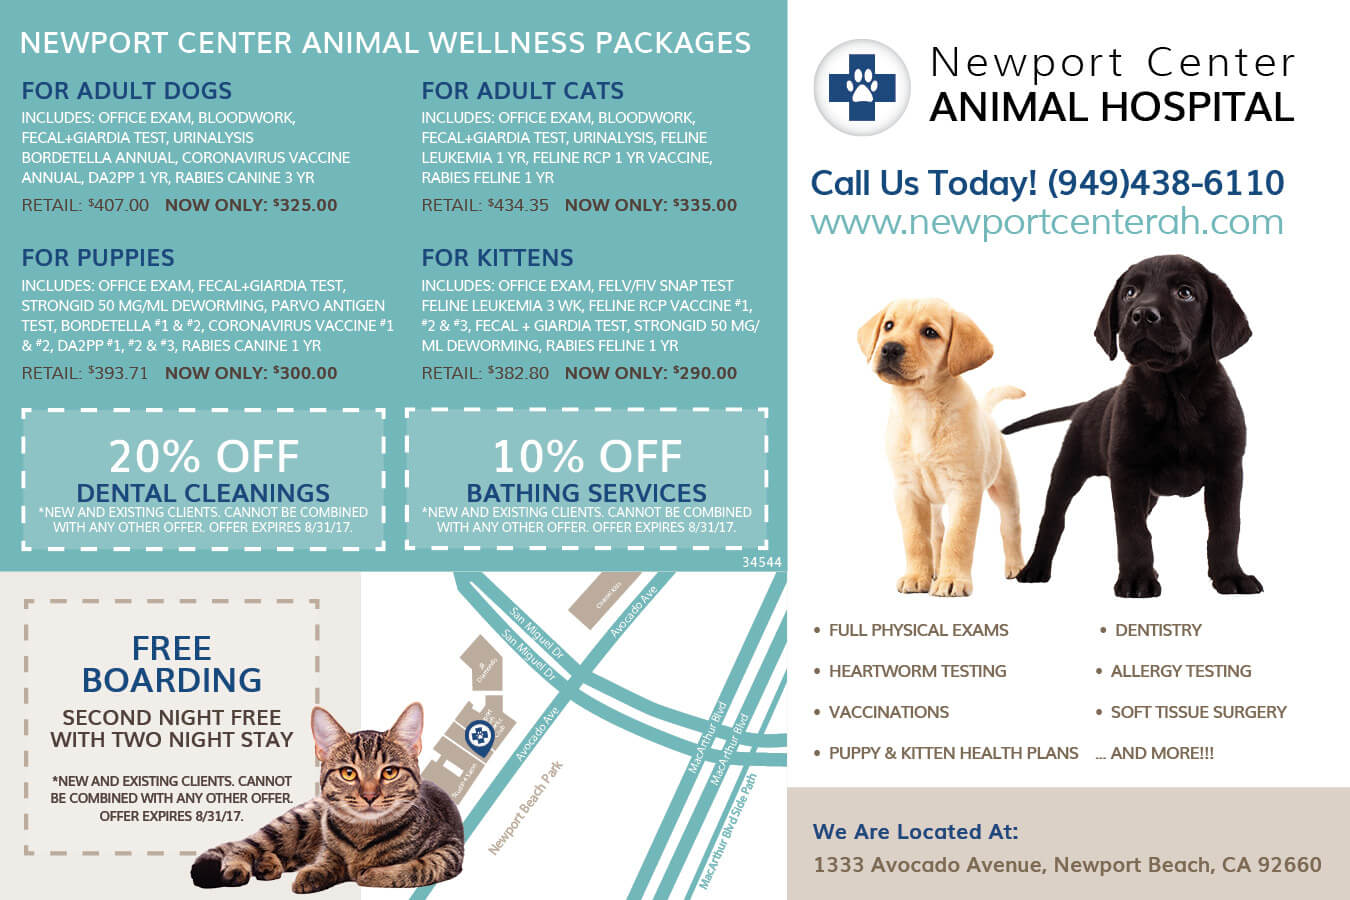 Newport Center Animal Hospital Specials Back | Animal Boarding, Veterinary Care and Hospital in Newport Beach